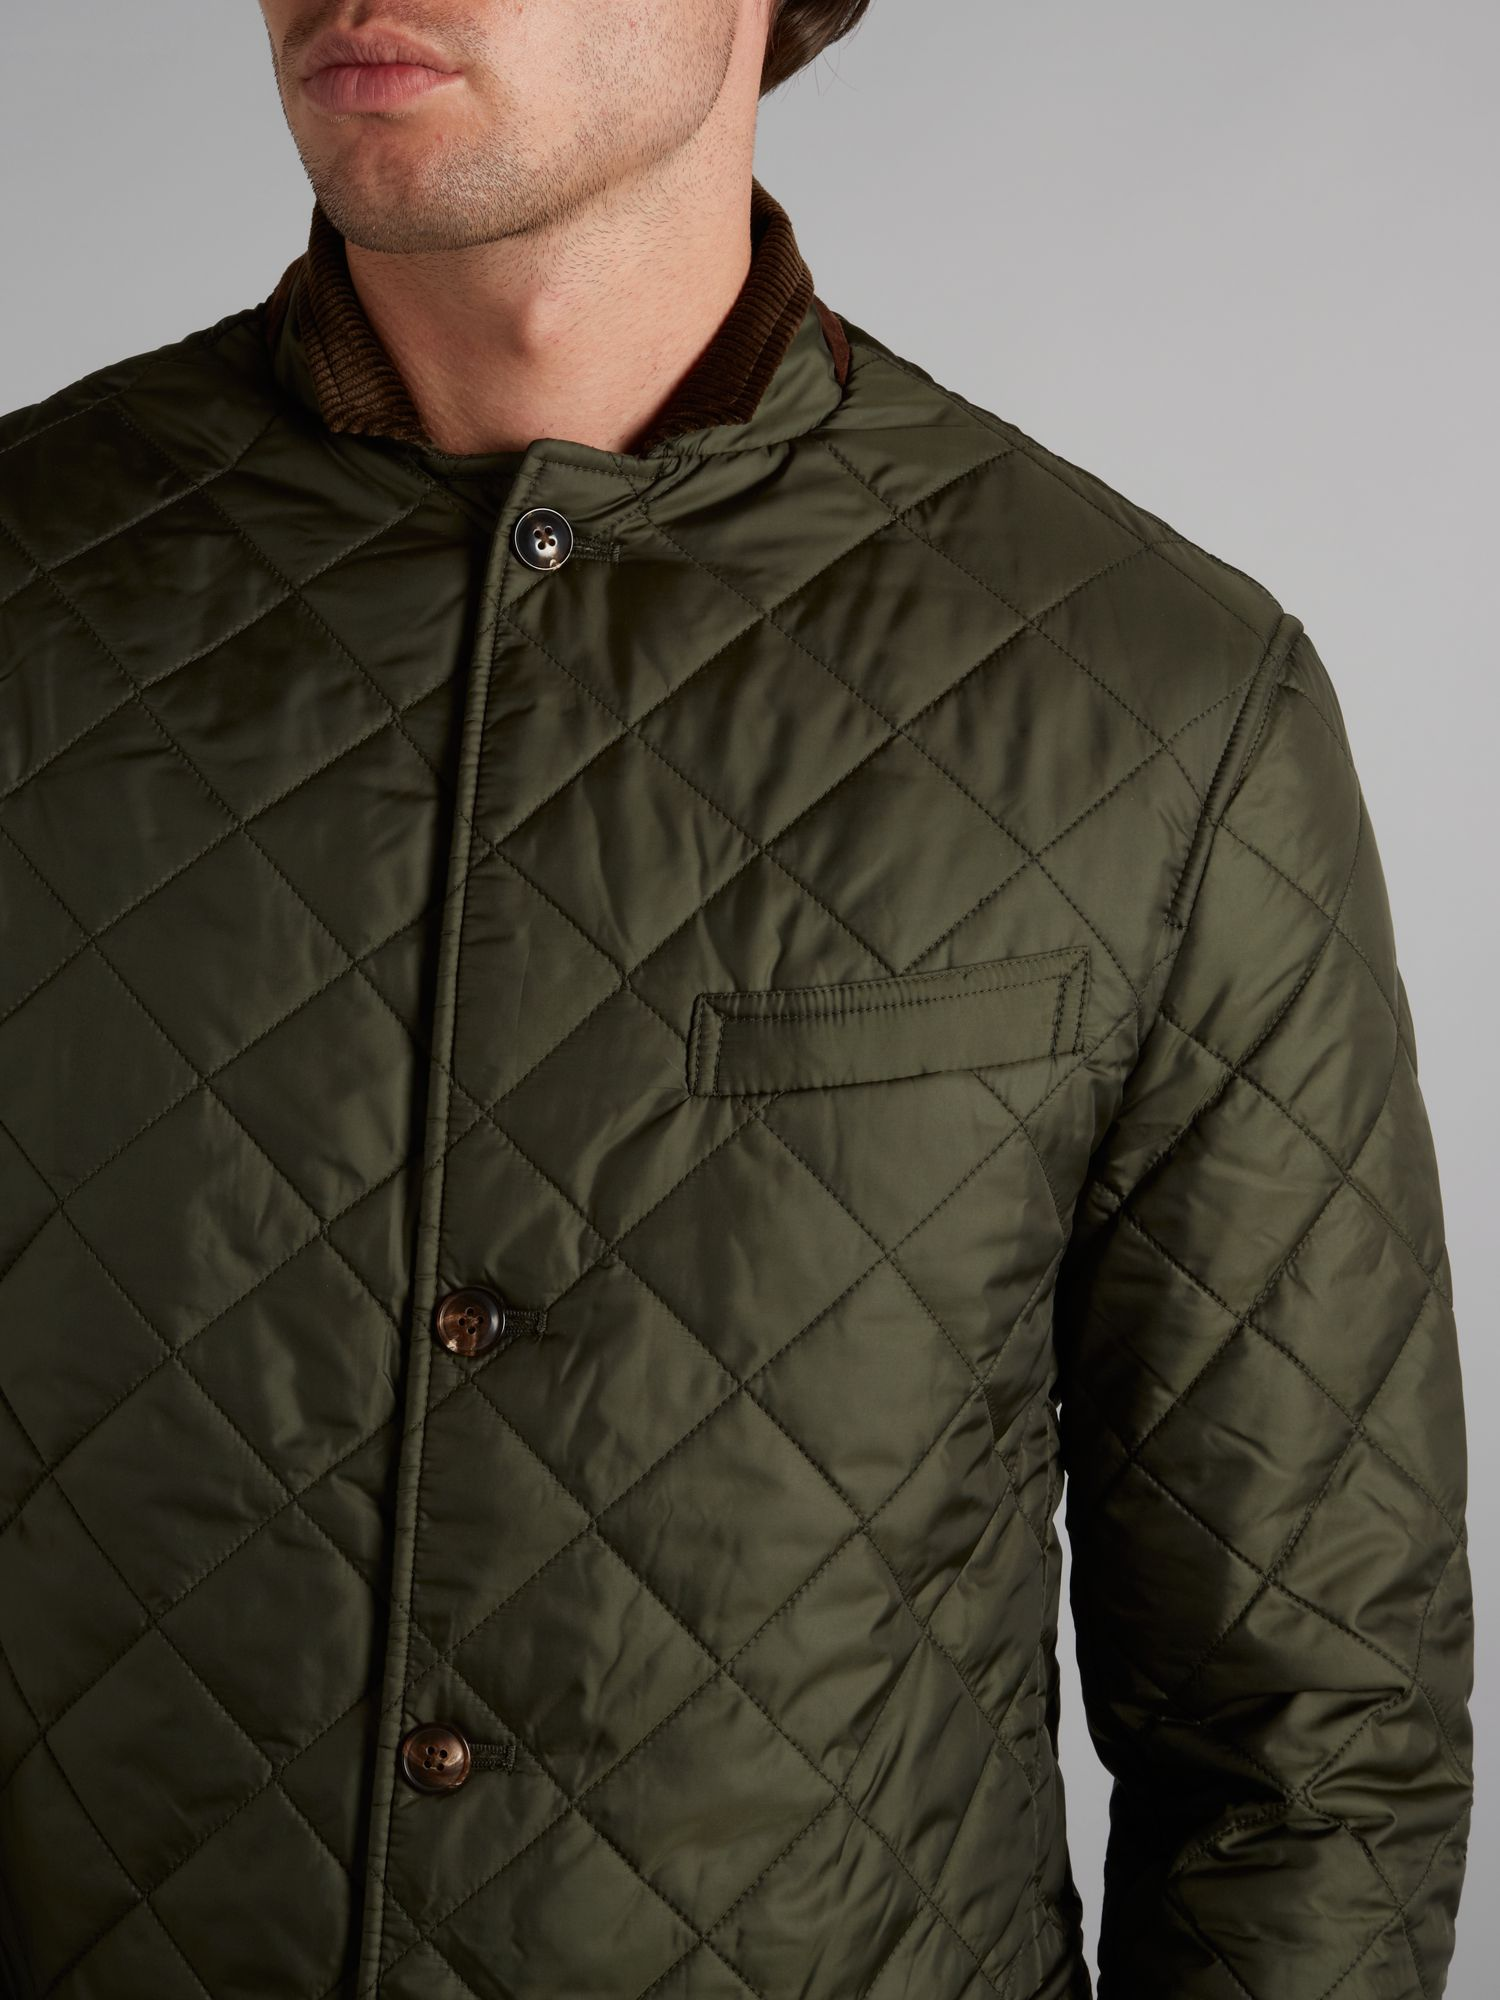 Polo ralph lauren Quilted Blazer in Green for Men | Lyst : ralph lauren quilted blazer - Adamdwight.com